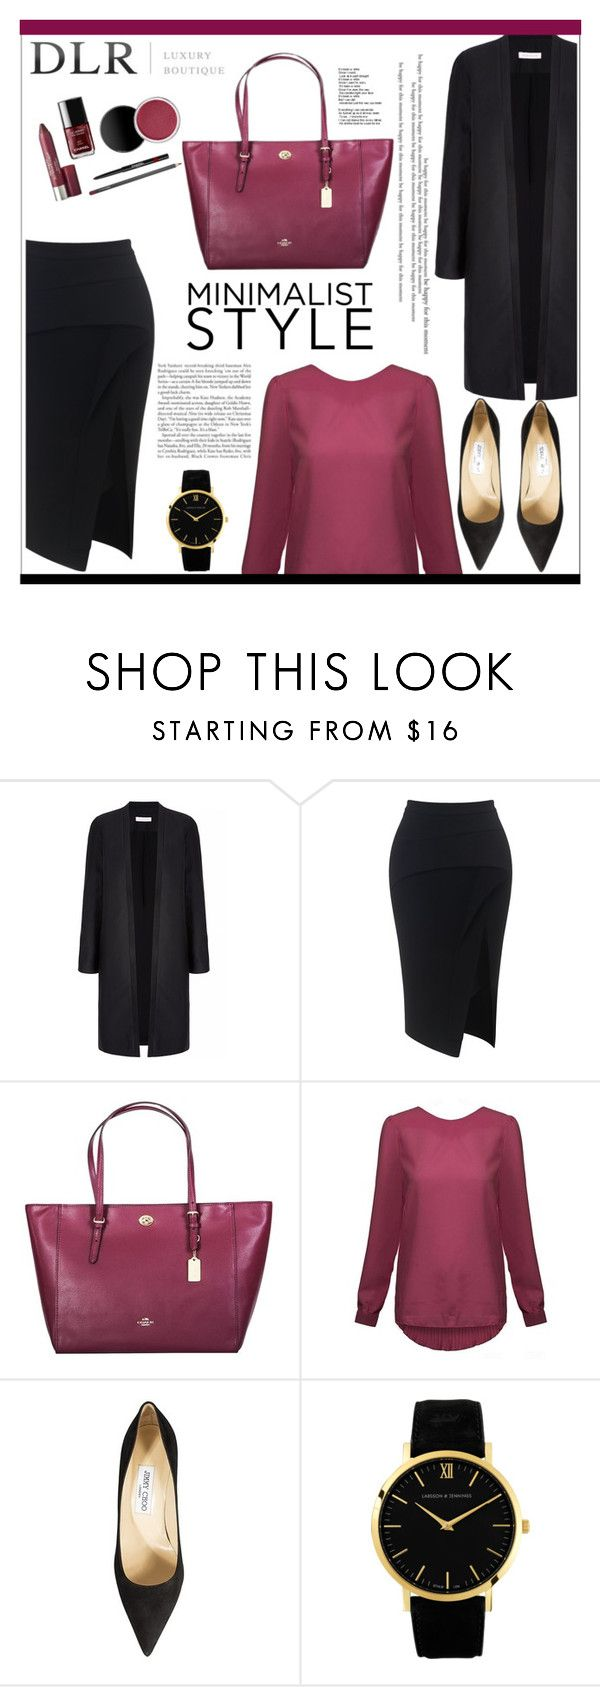 """""""DLR - LUXURY BOUTIQUE"""" by isatusia ❤ liked on Polyvore featuring Maticevski, Coach, Jimmy Choo, Larsson & Jennings and dlr"""